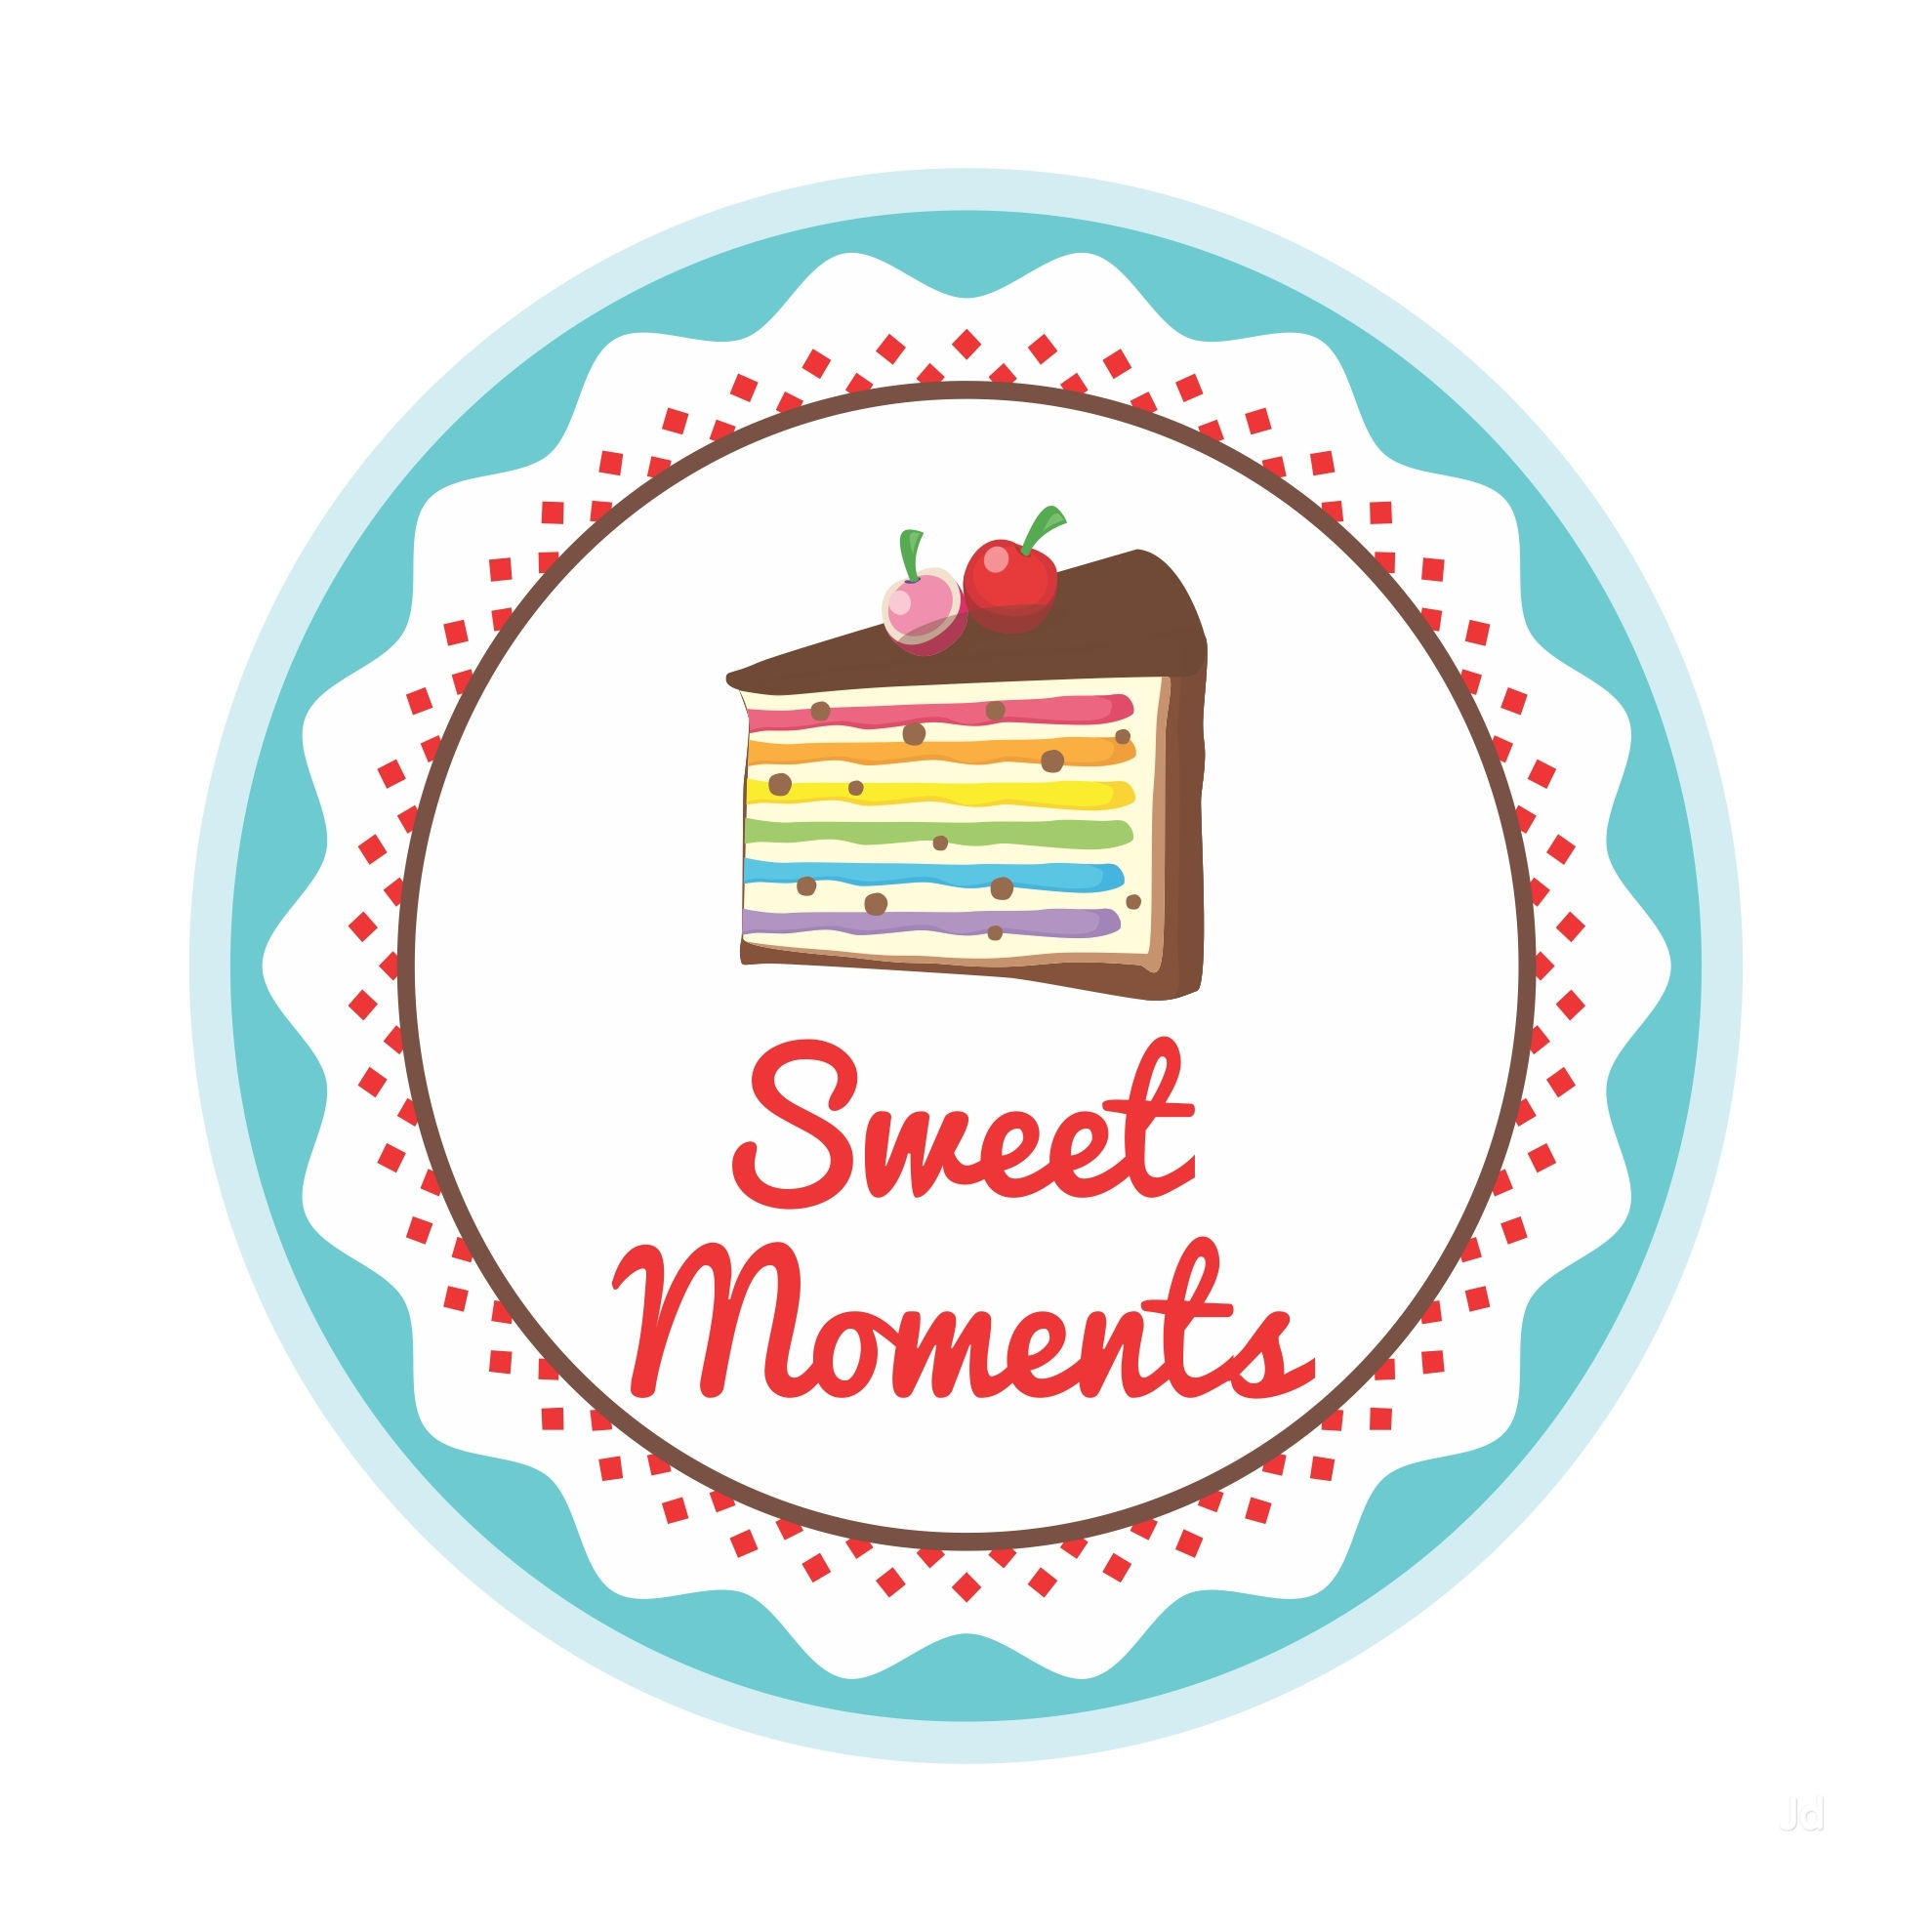 Sweet Moments (Closed Down) in Aundh, Pune.